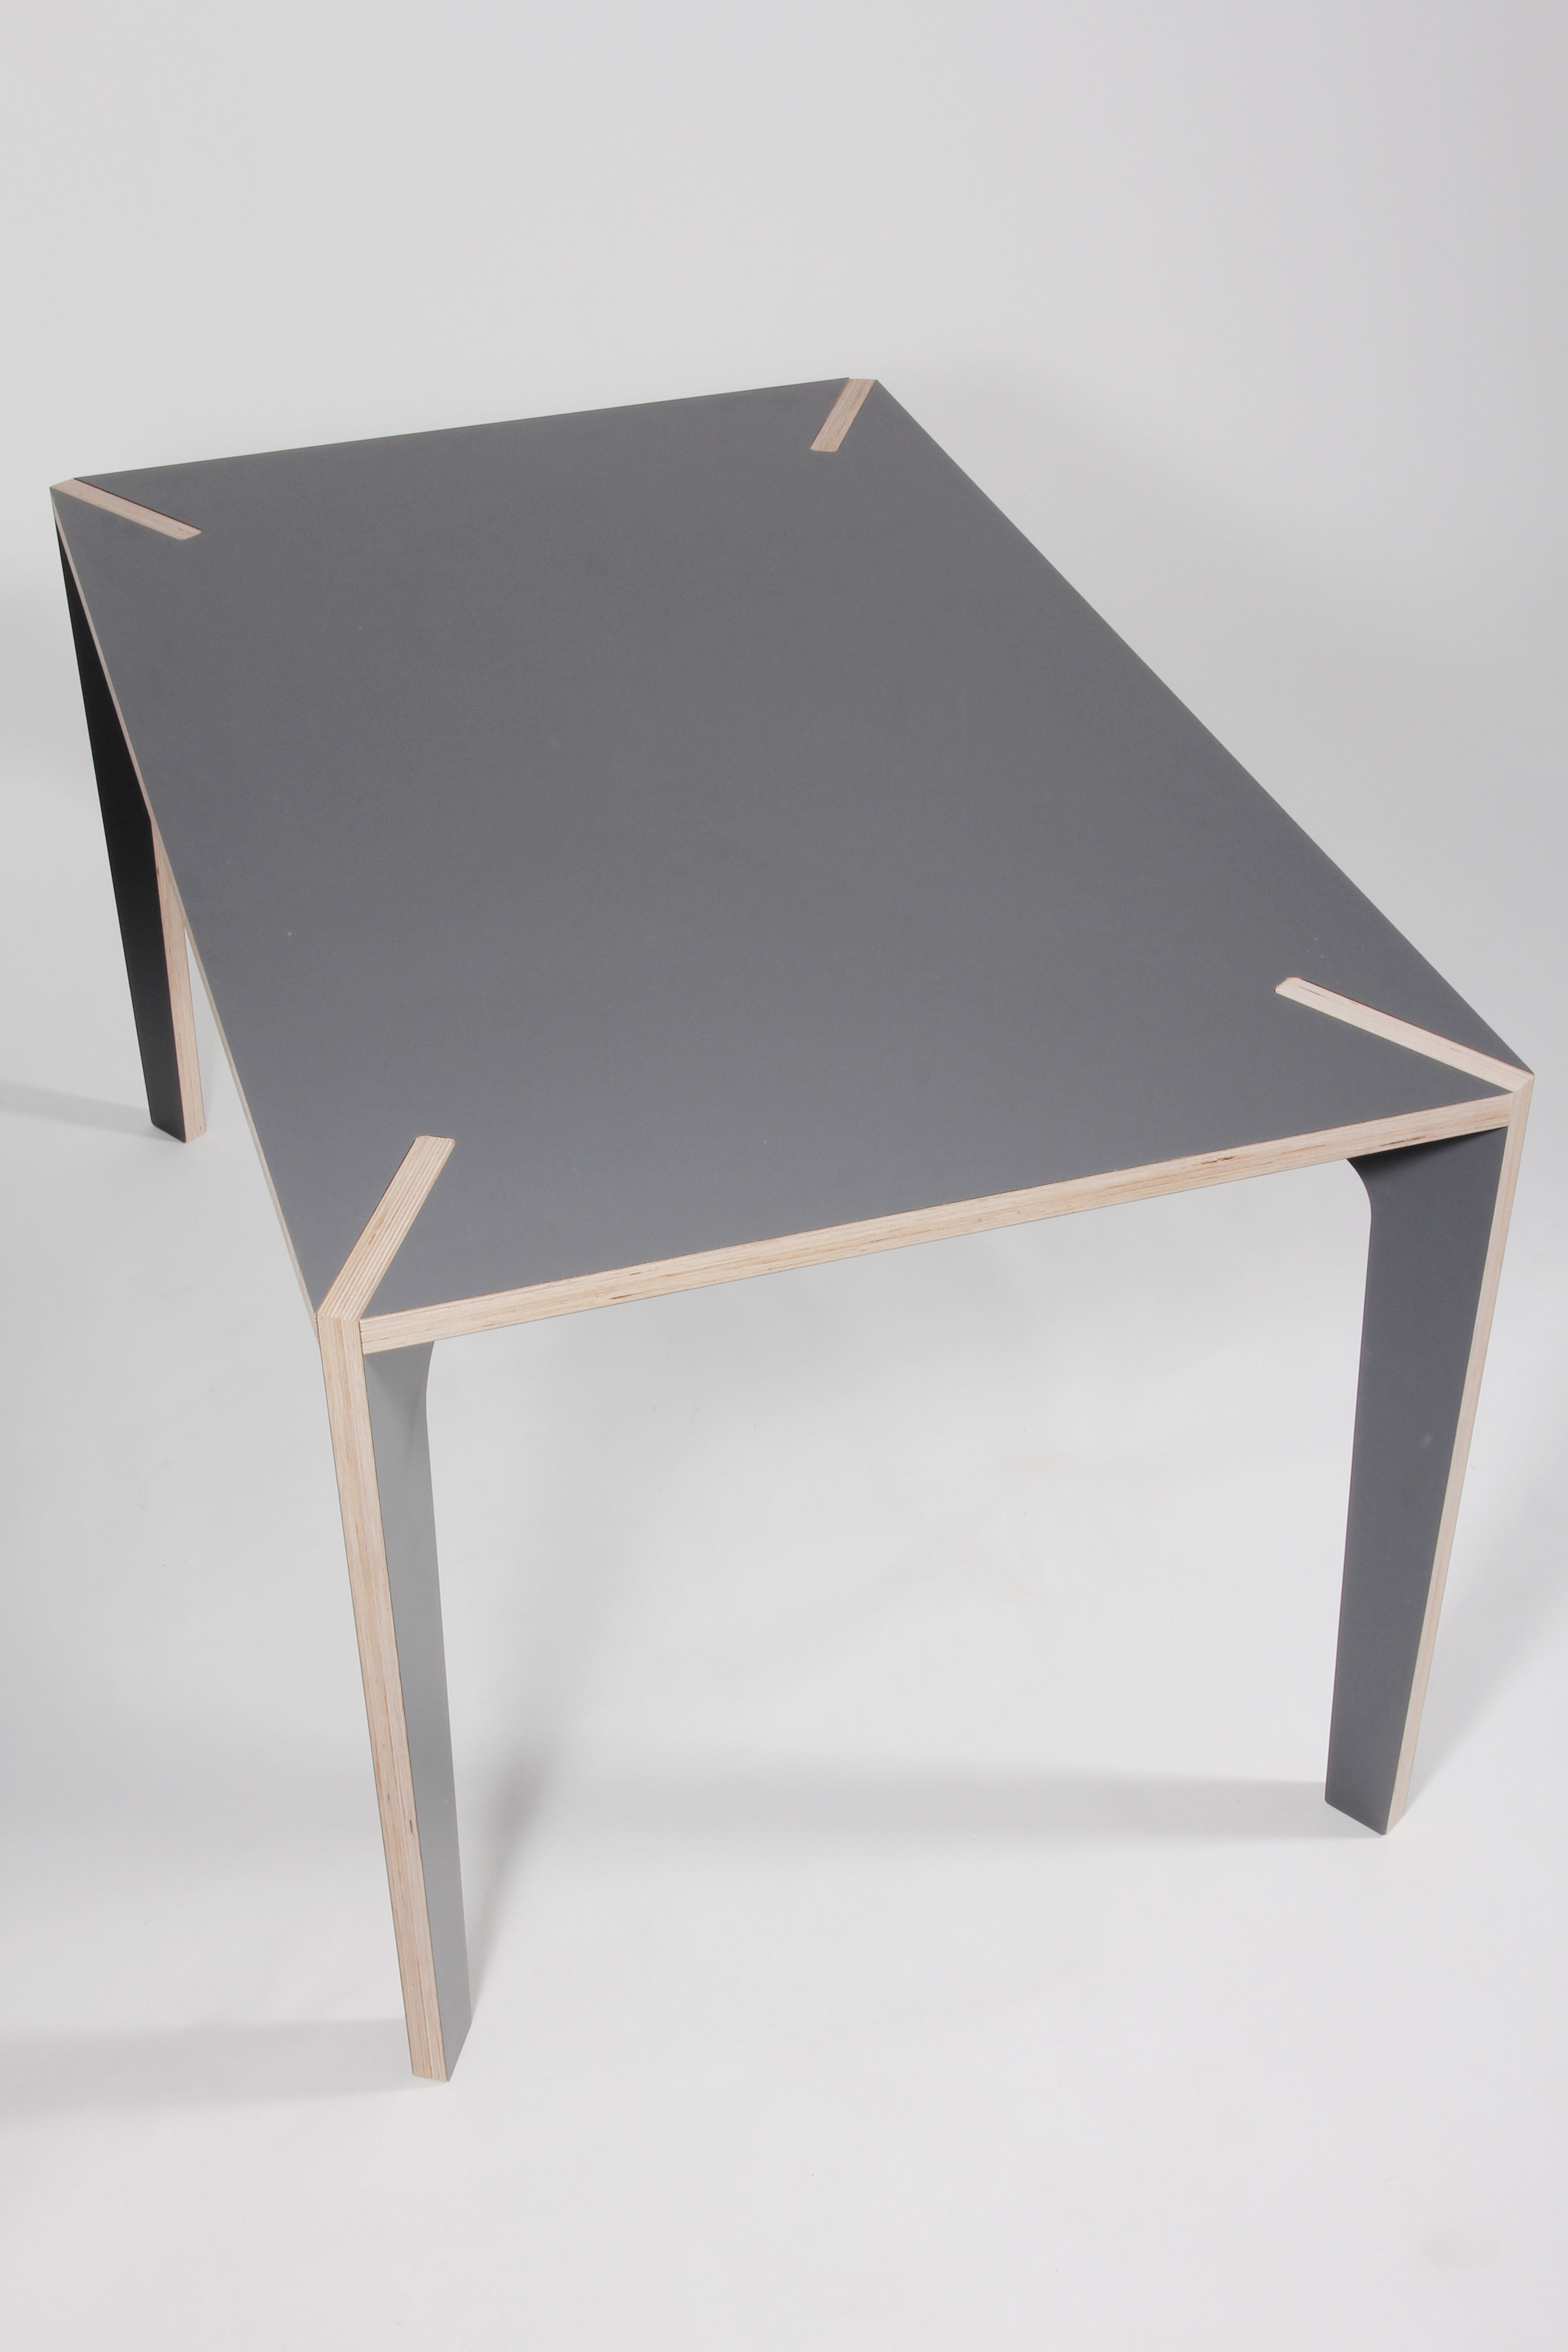 Table s rie x 140 x 85 cm 140 x 85 cm gris basalte for Serie a table 1984 85